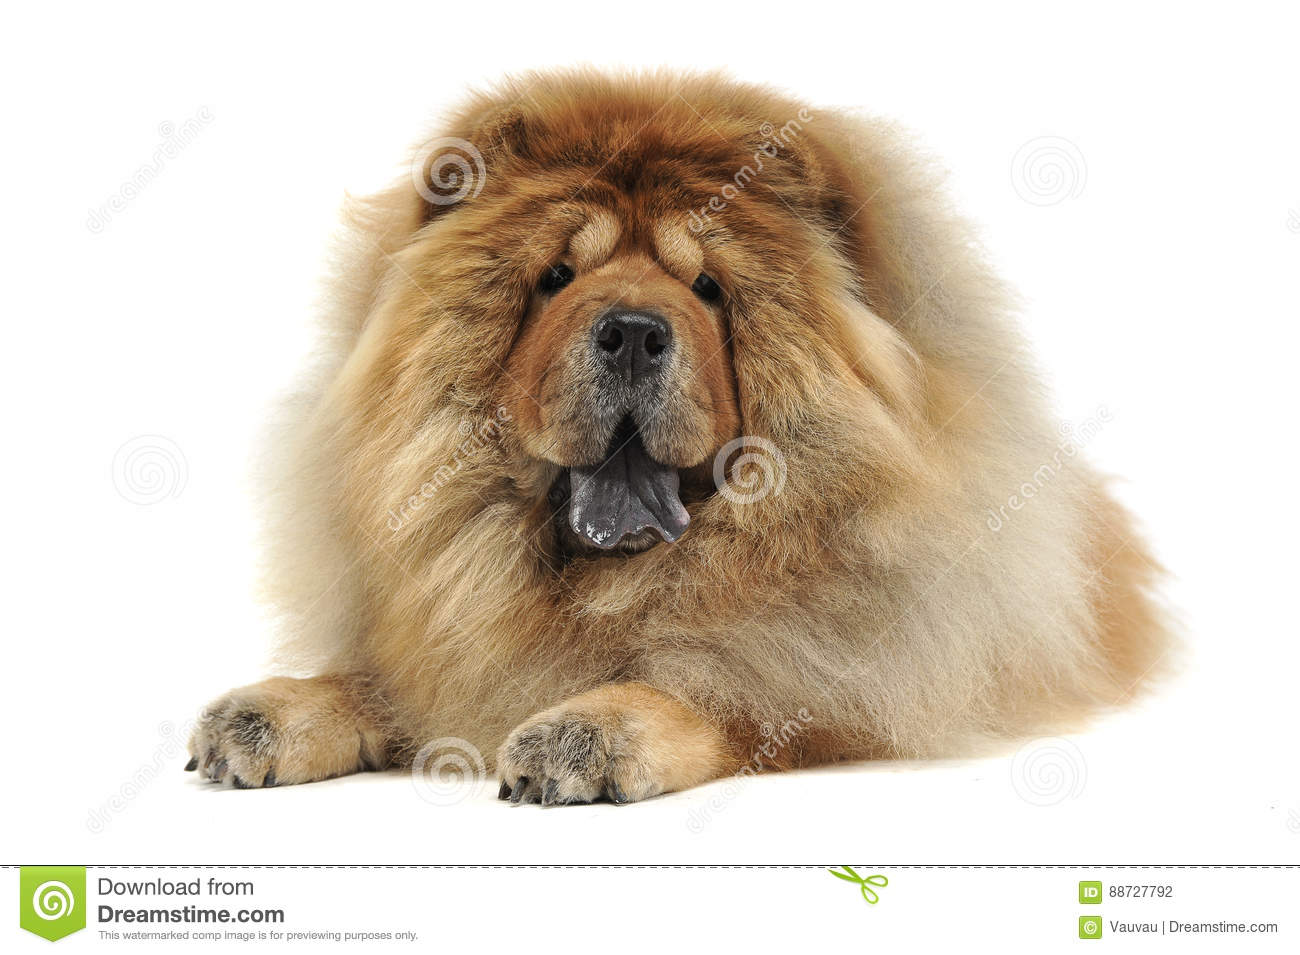 Chow chow relaxing in a white background studio